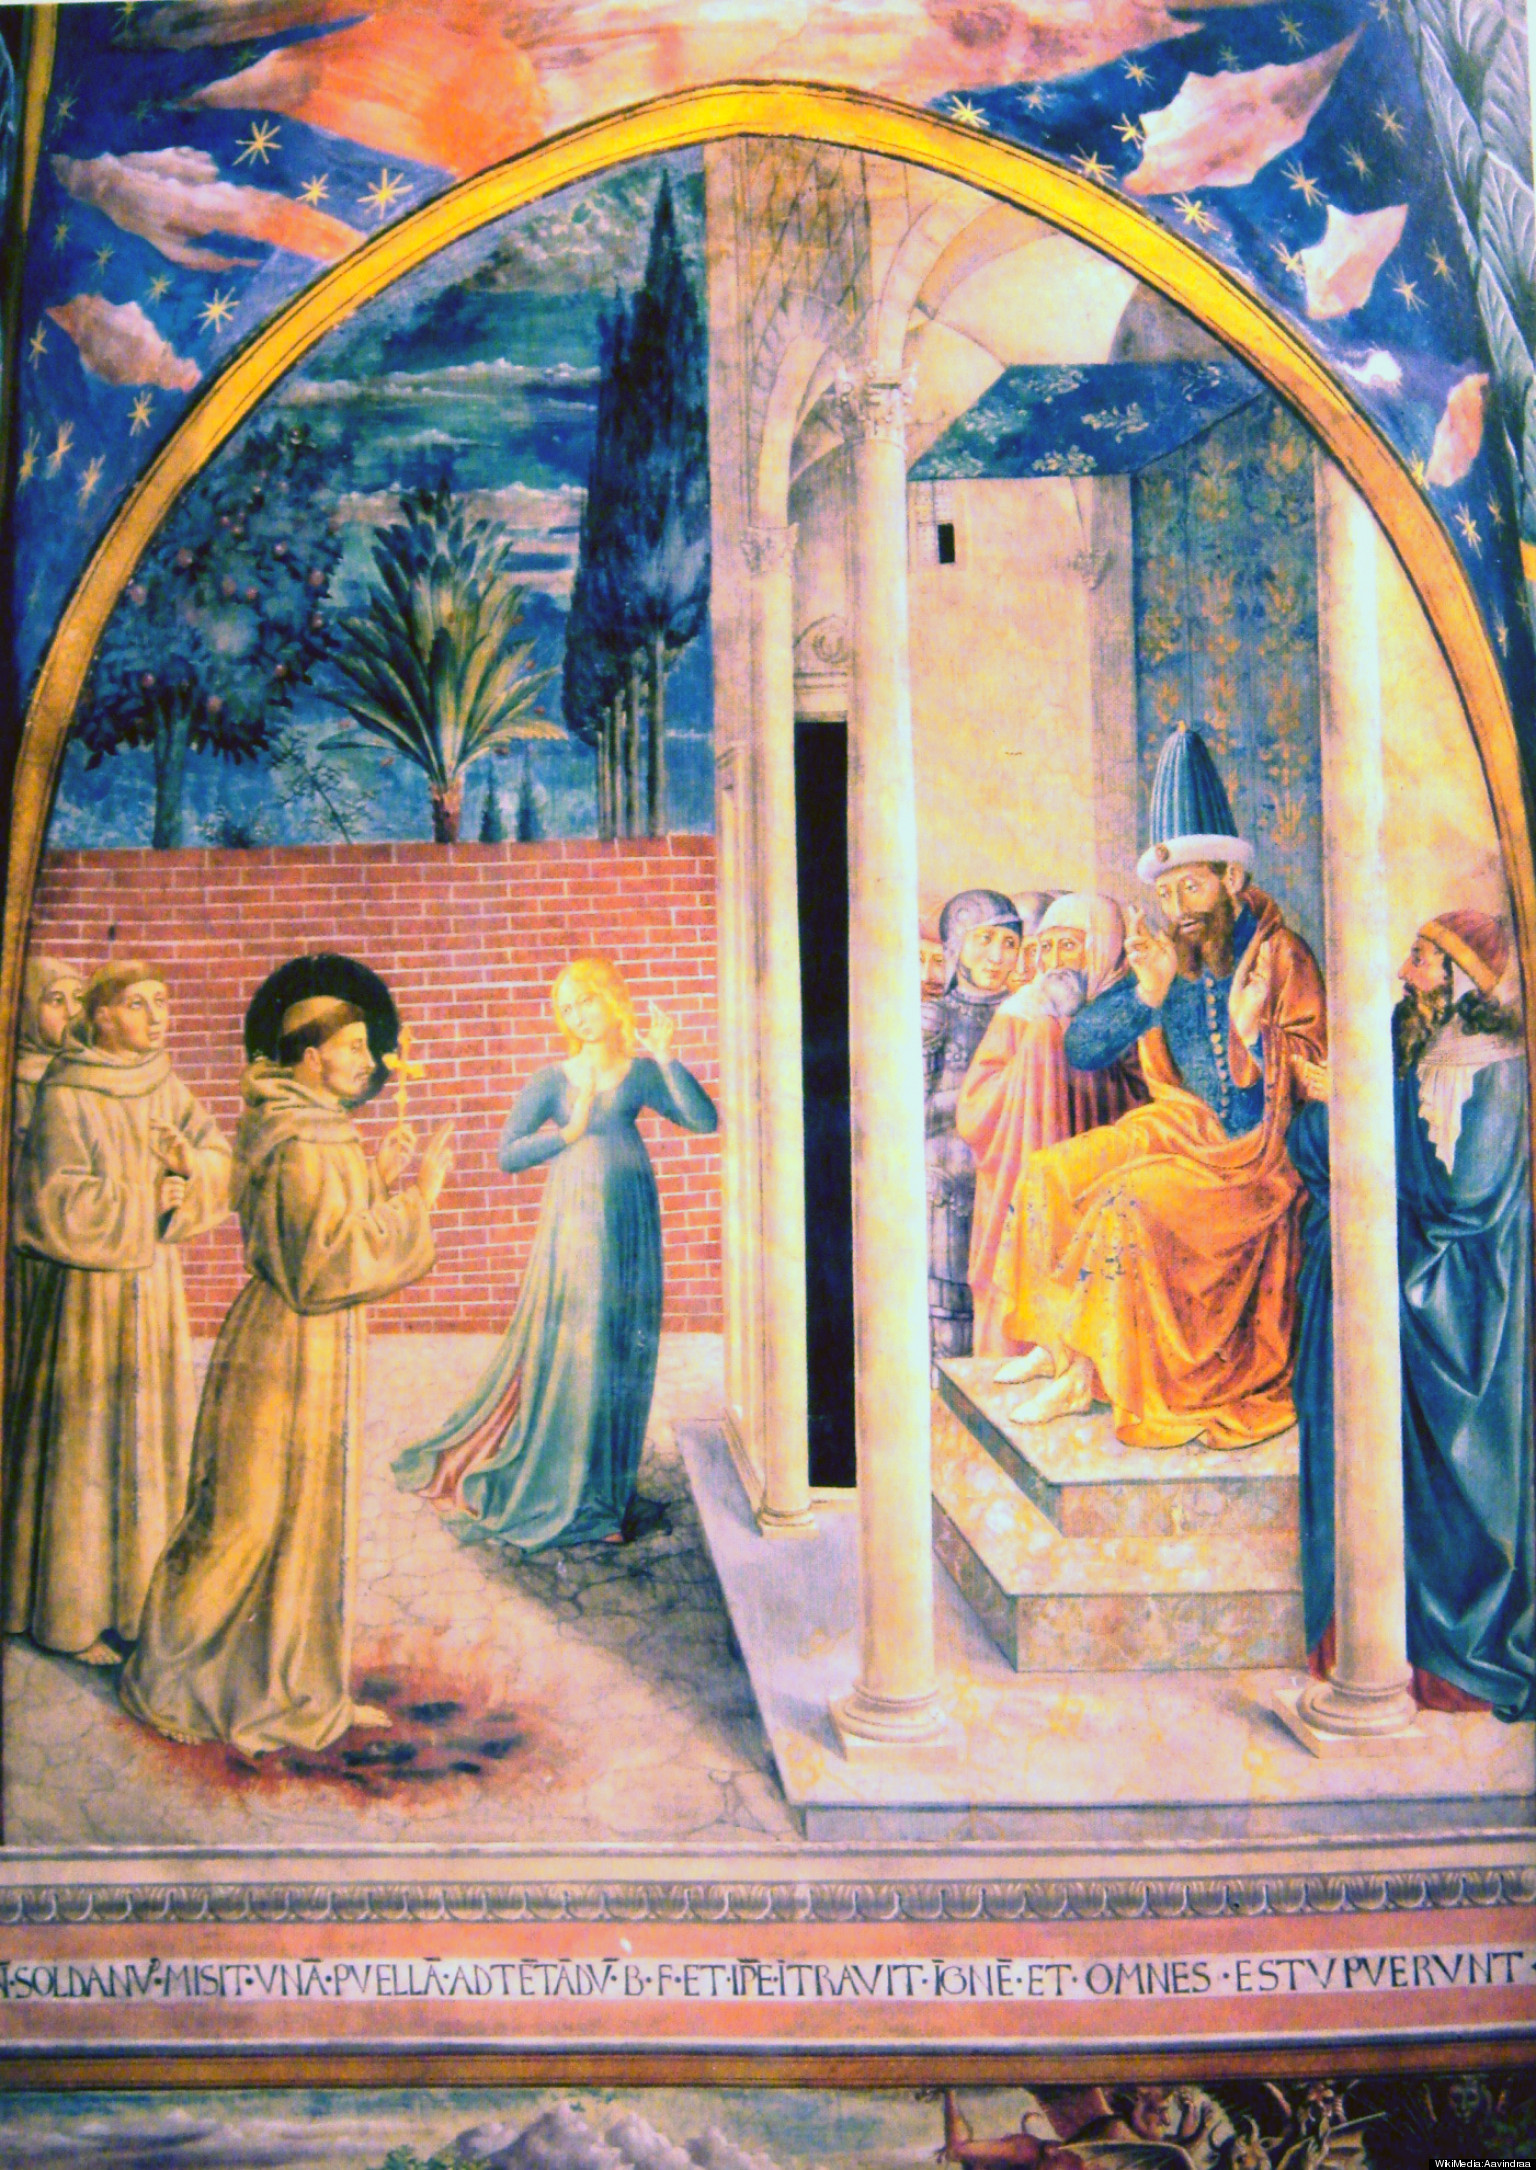 mount saint francis muslim Saint francis of assisi captured the imagination of his contemporaries by   chapel named porziuncula that belonged to the benedictine abbey of mount  subasio  saint francis decided to leave again to preach the muslims in  morocco god.